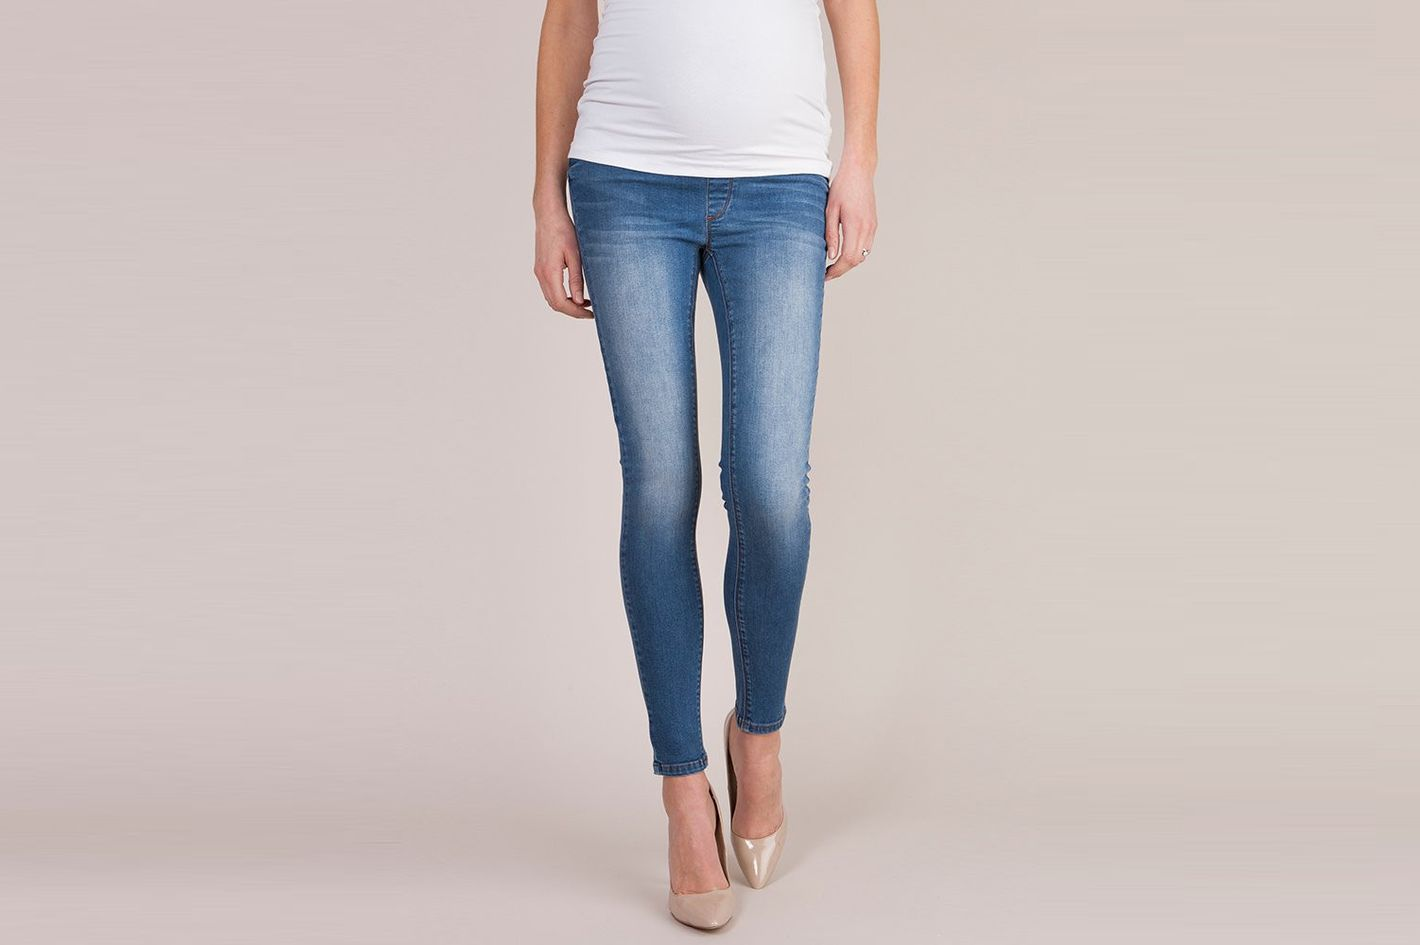 8e4b63f7a41 Séraphine Dark Over Bump Super-Skinny Maternity Jeans